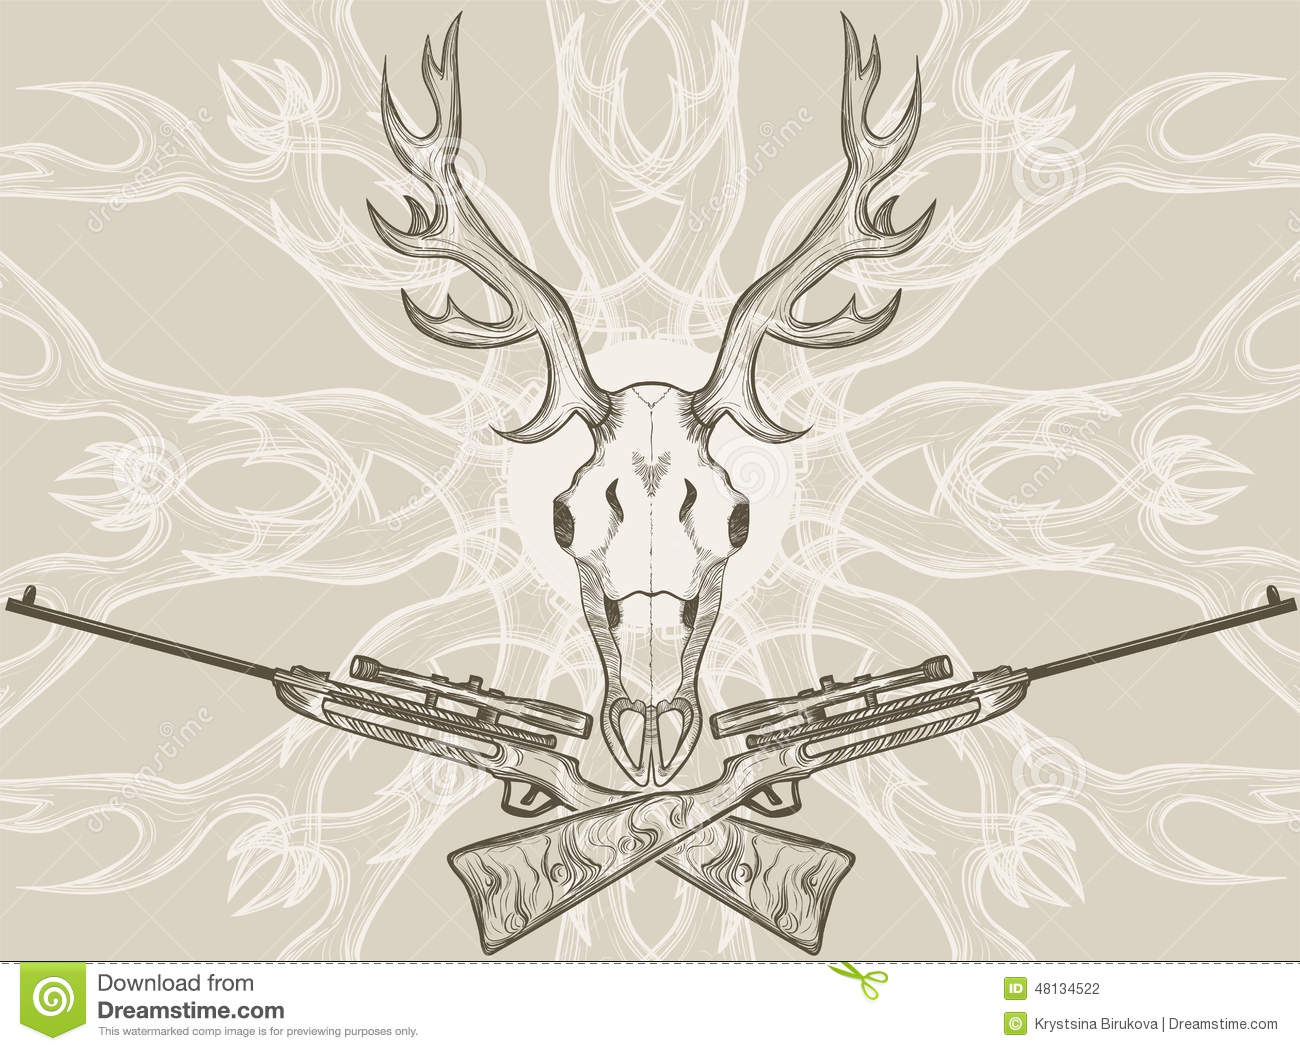 Deer Skull And Crossed Rifles Stock Vector - Illustration of anatomy ...